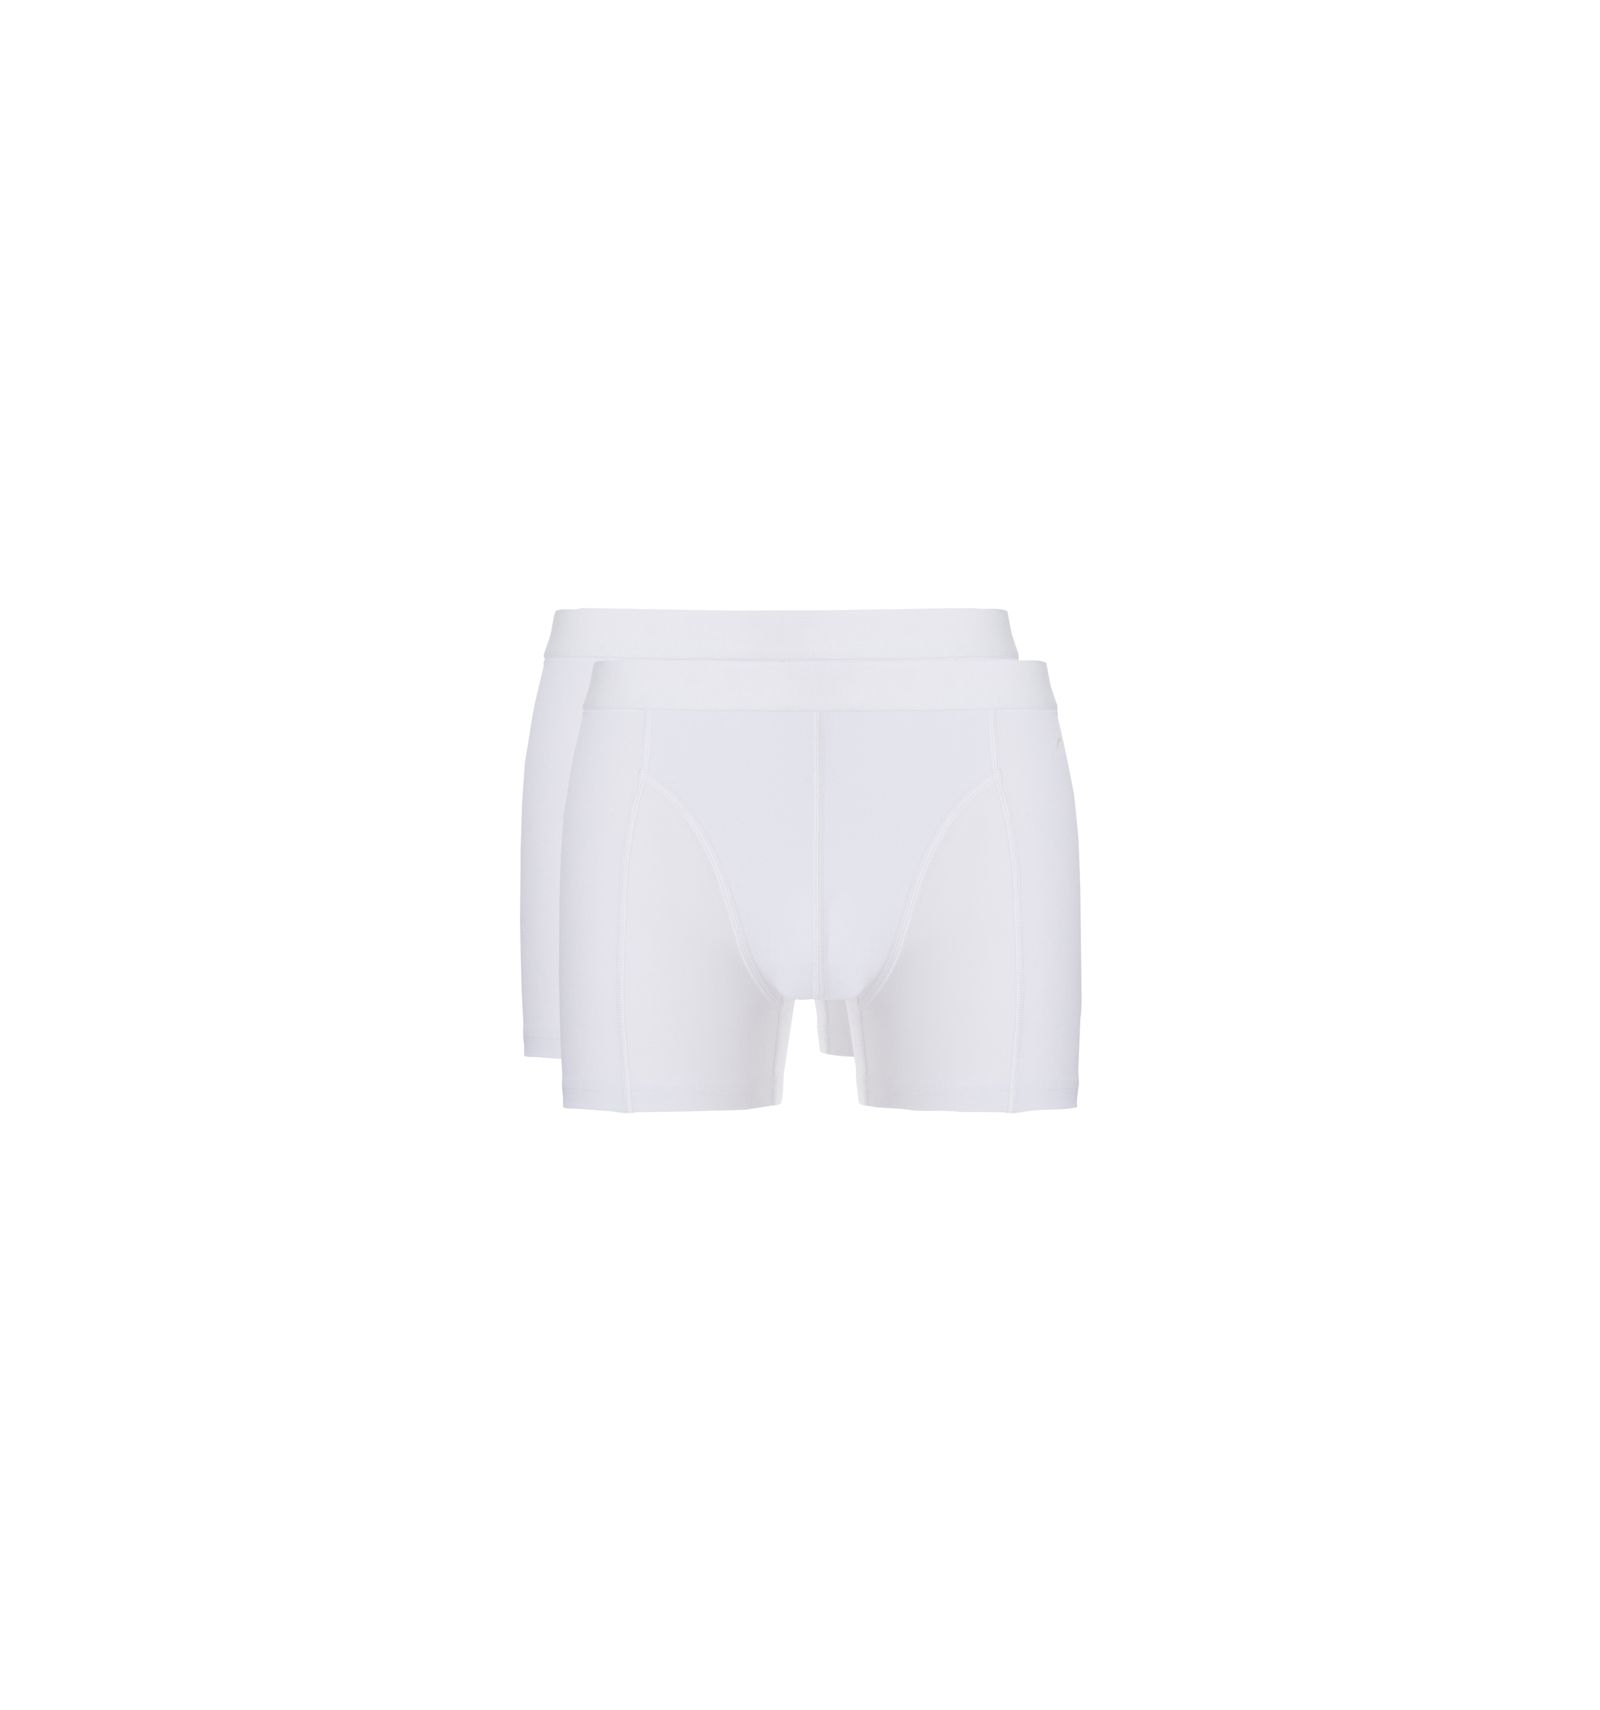 Ten Cate Fine Men Shorts Wit 2-pack